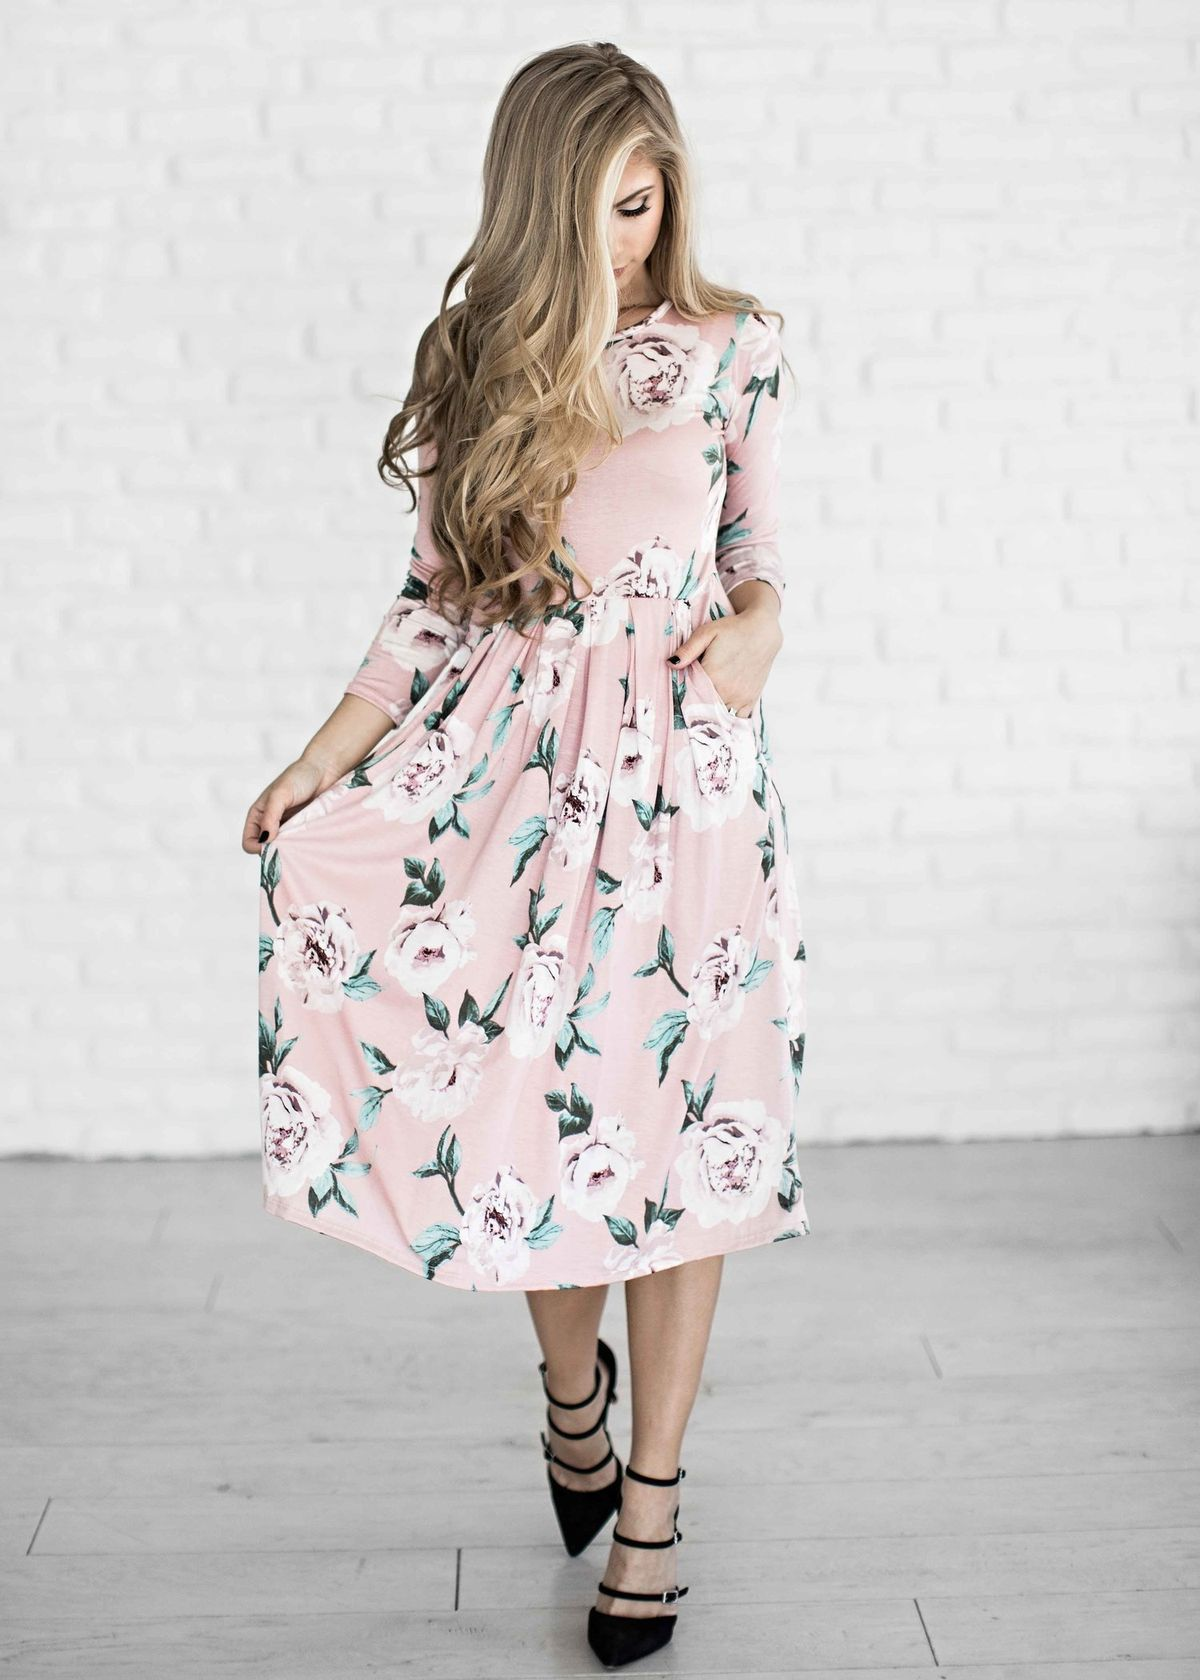 6ed1b4de3899 15 stylish church Easter outfits for women to get ideas from ...